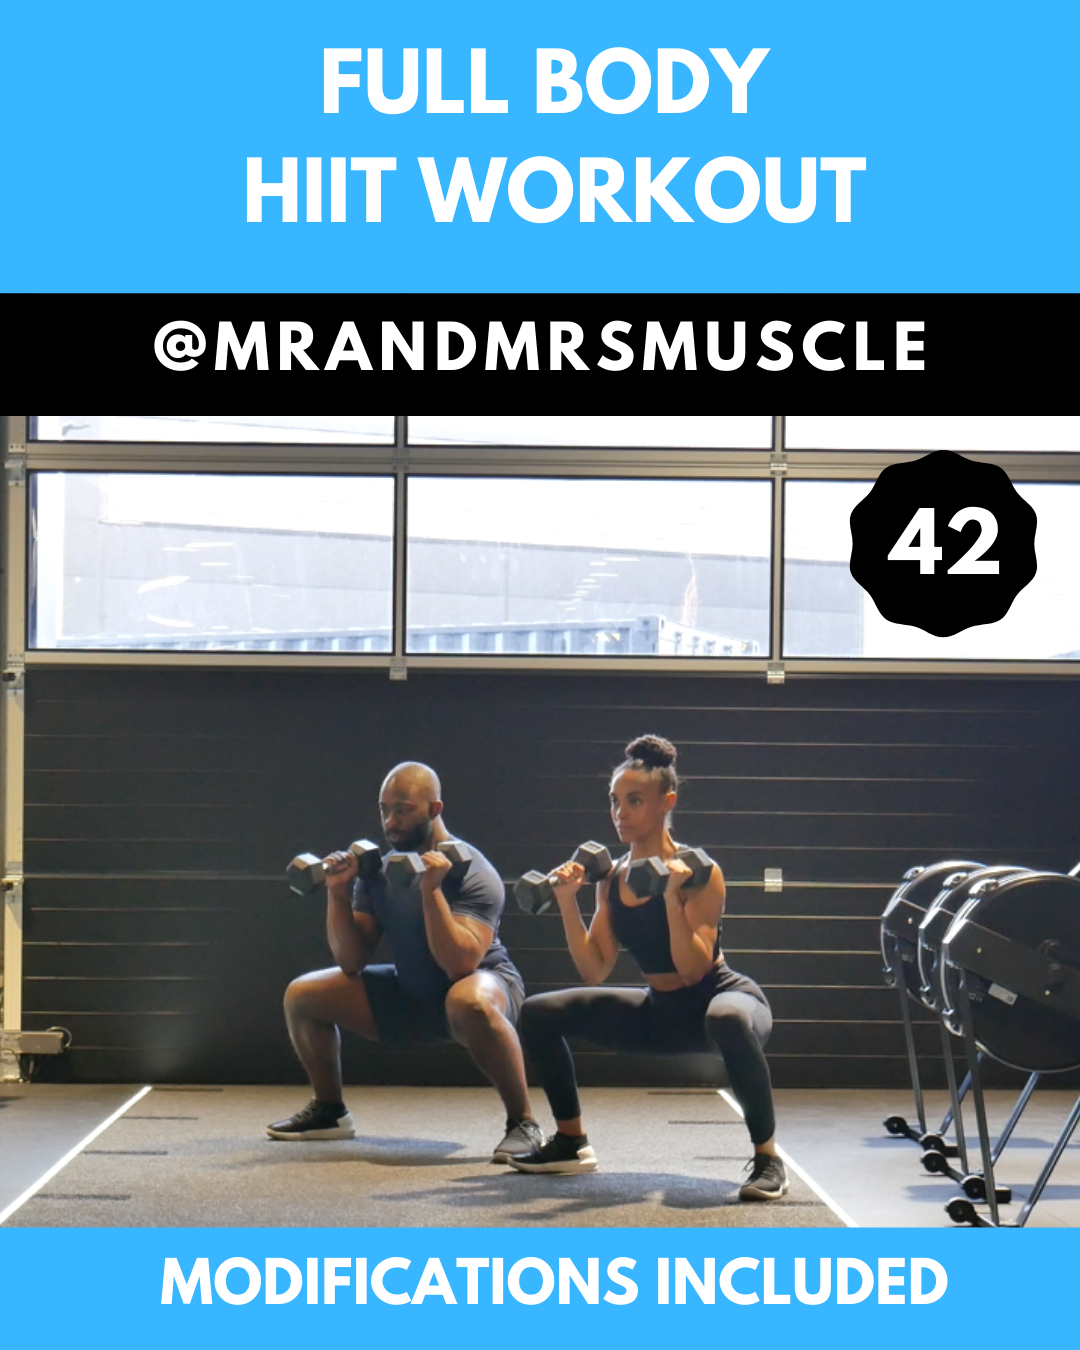 Full Body HIIT Session